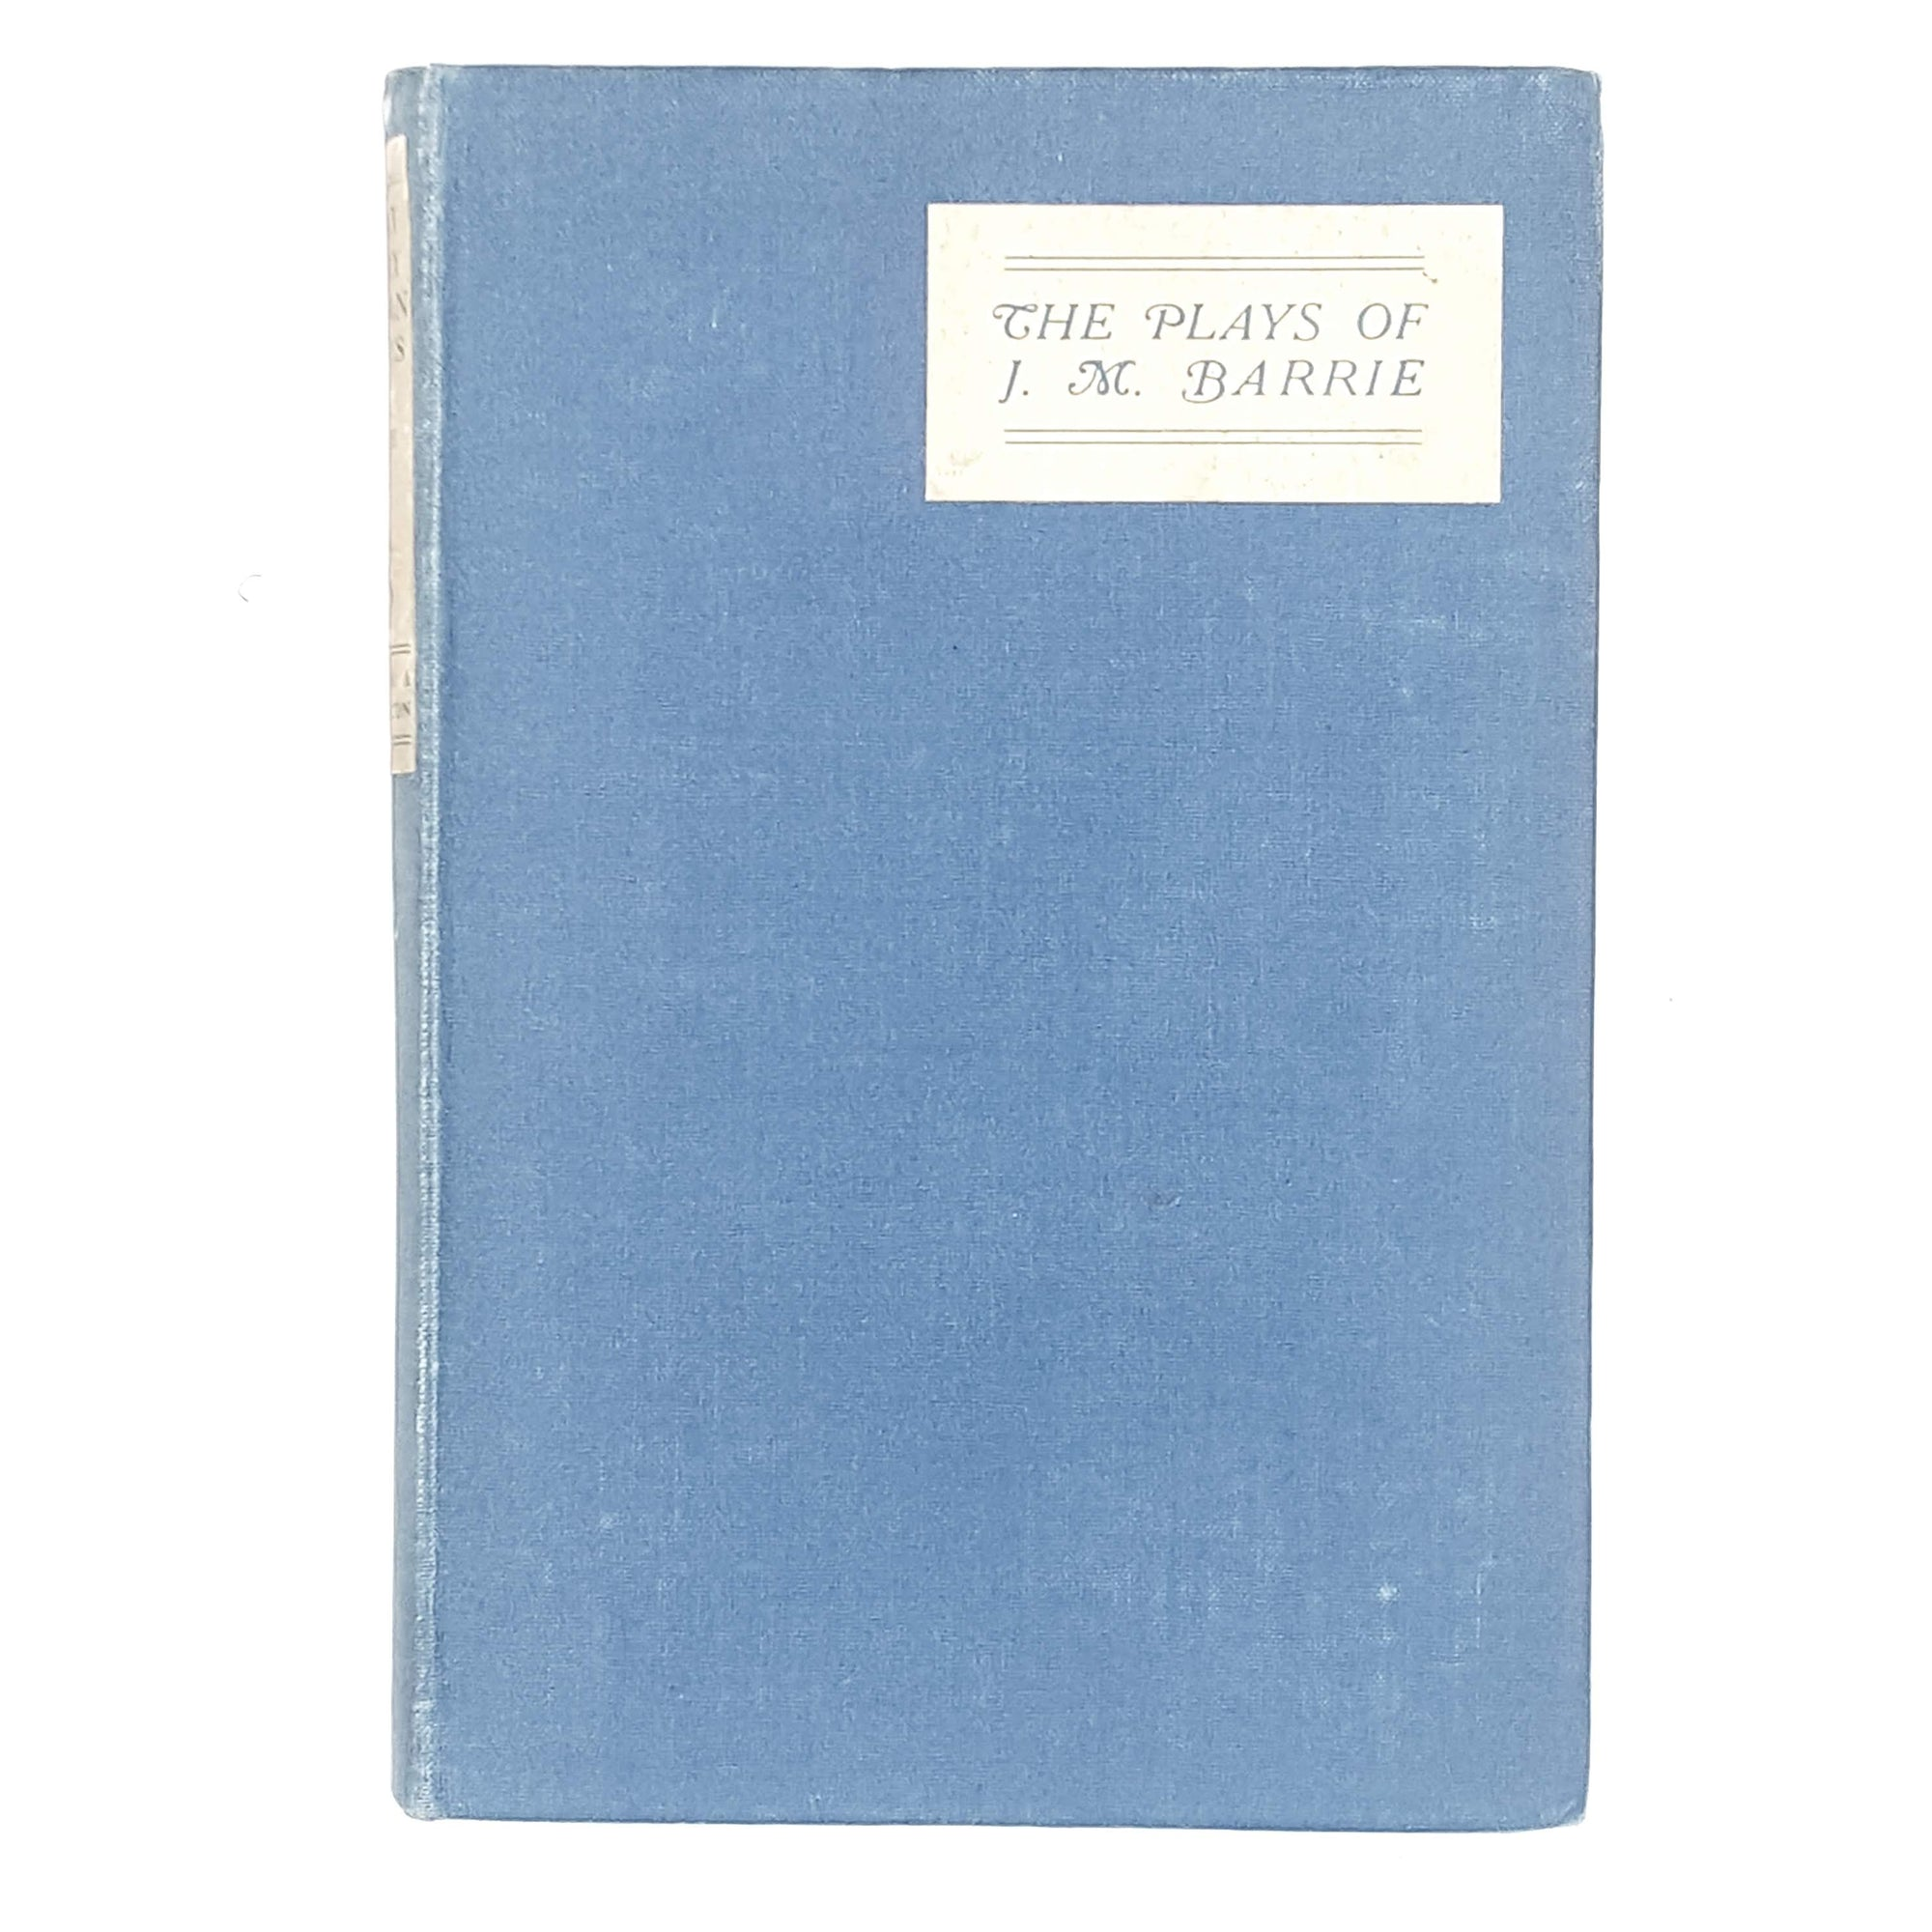 The Plays of J. M. Barrie 1922